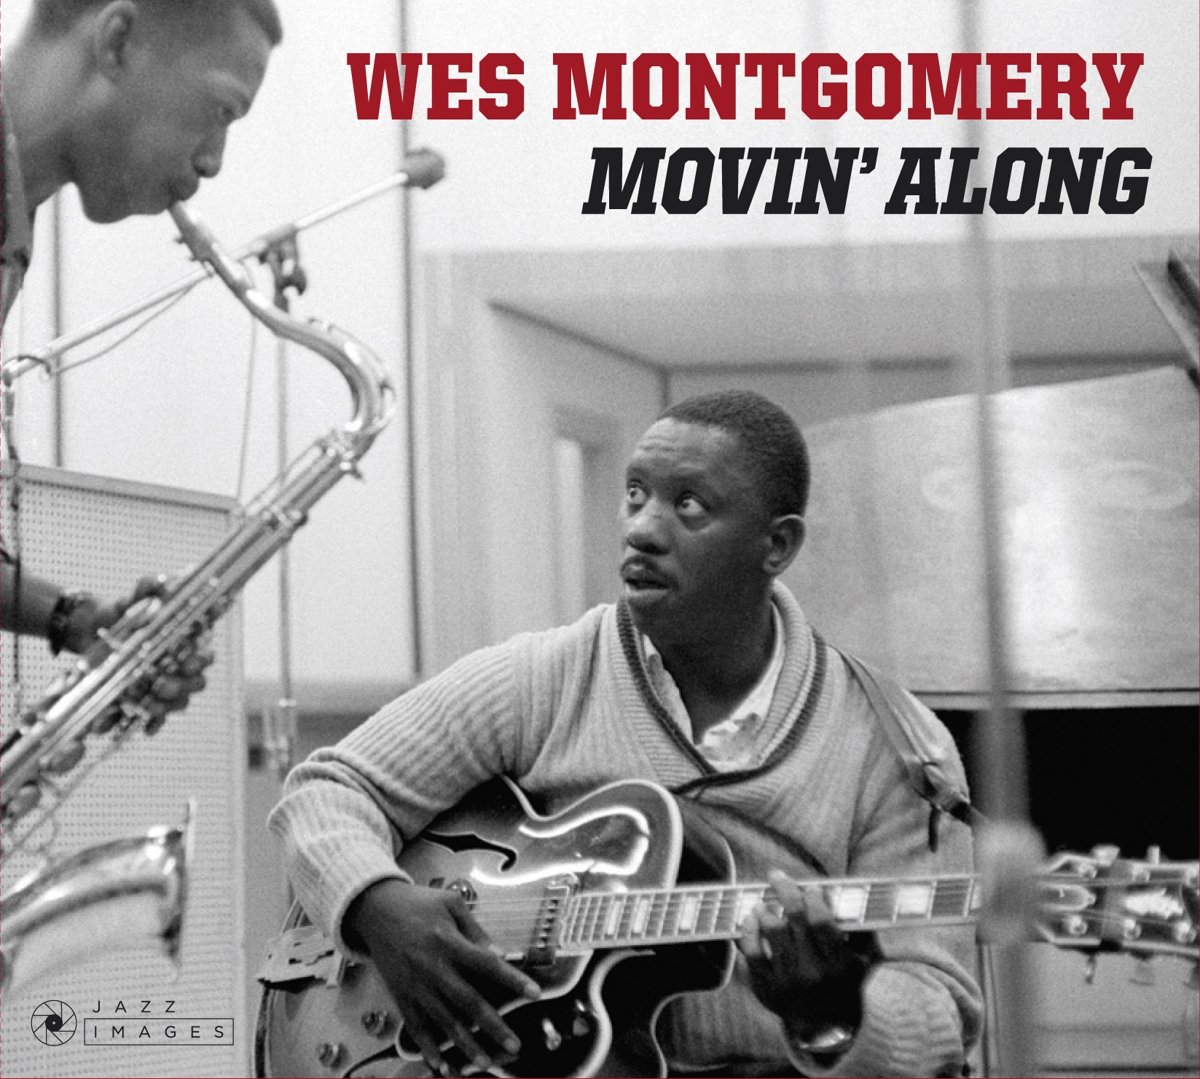 CD : Wes Montgomery - Movin Along (Limited Edition, Bonus Tracks, Digipack Packaging, Spain - Import)